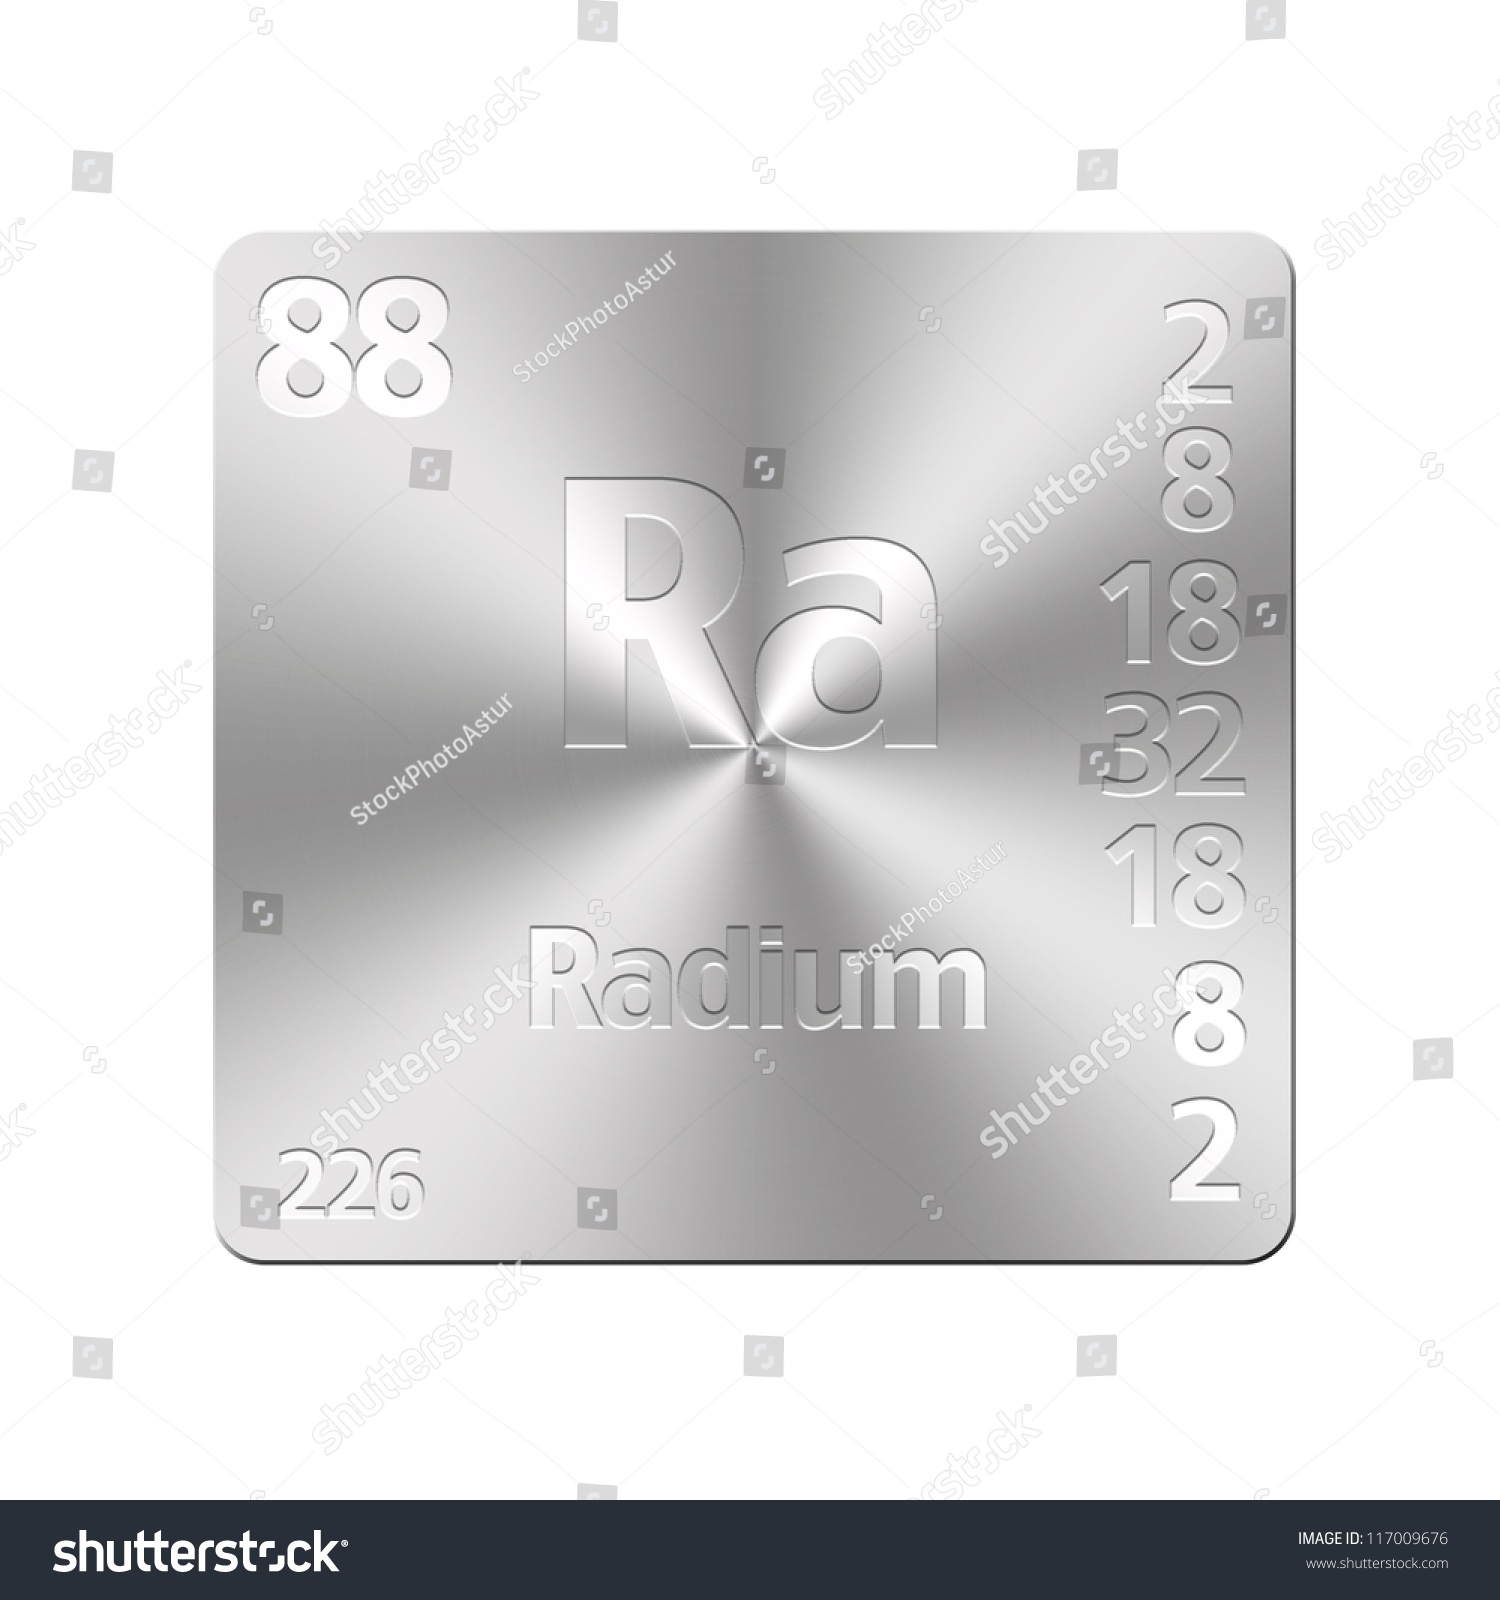 Isolated metal button periodic table radium stock illustration isolated metal button with periodic table radium gamestrikefo Images